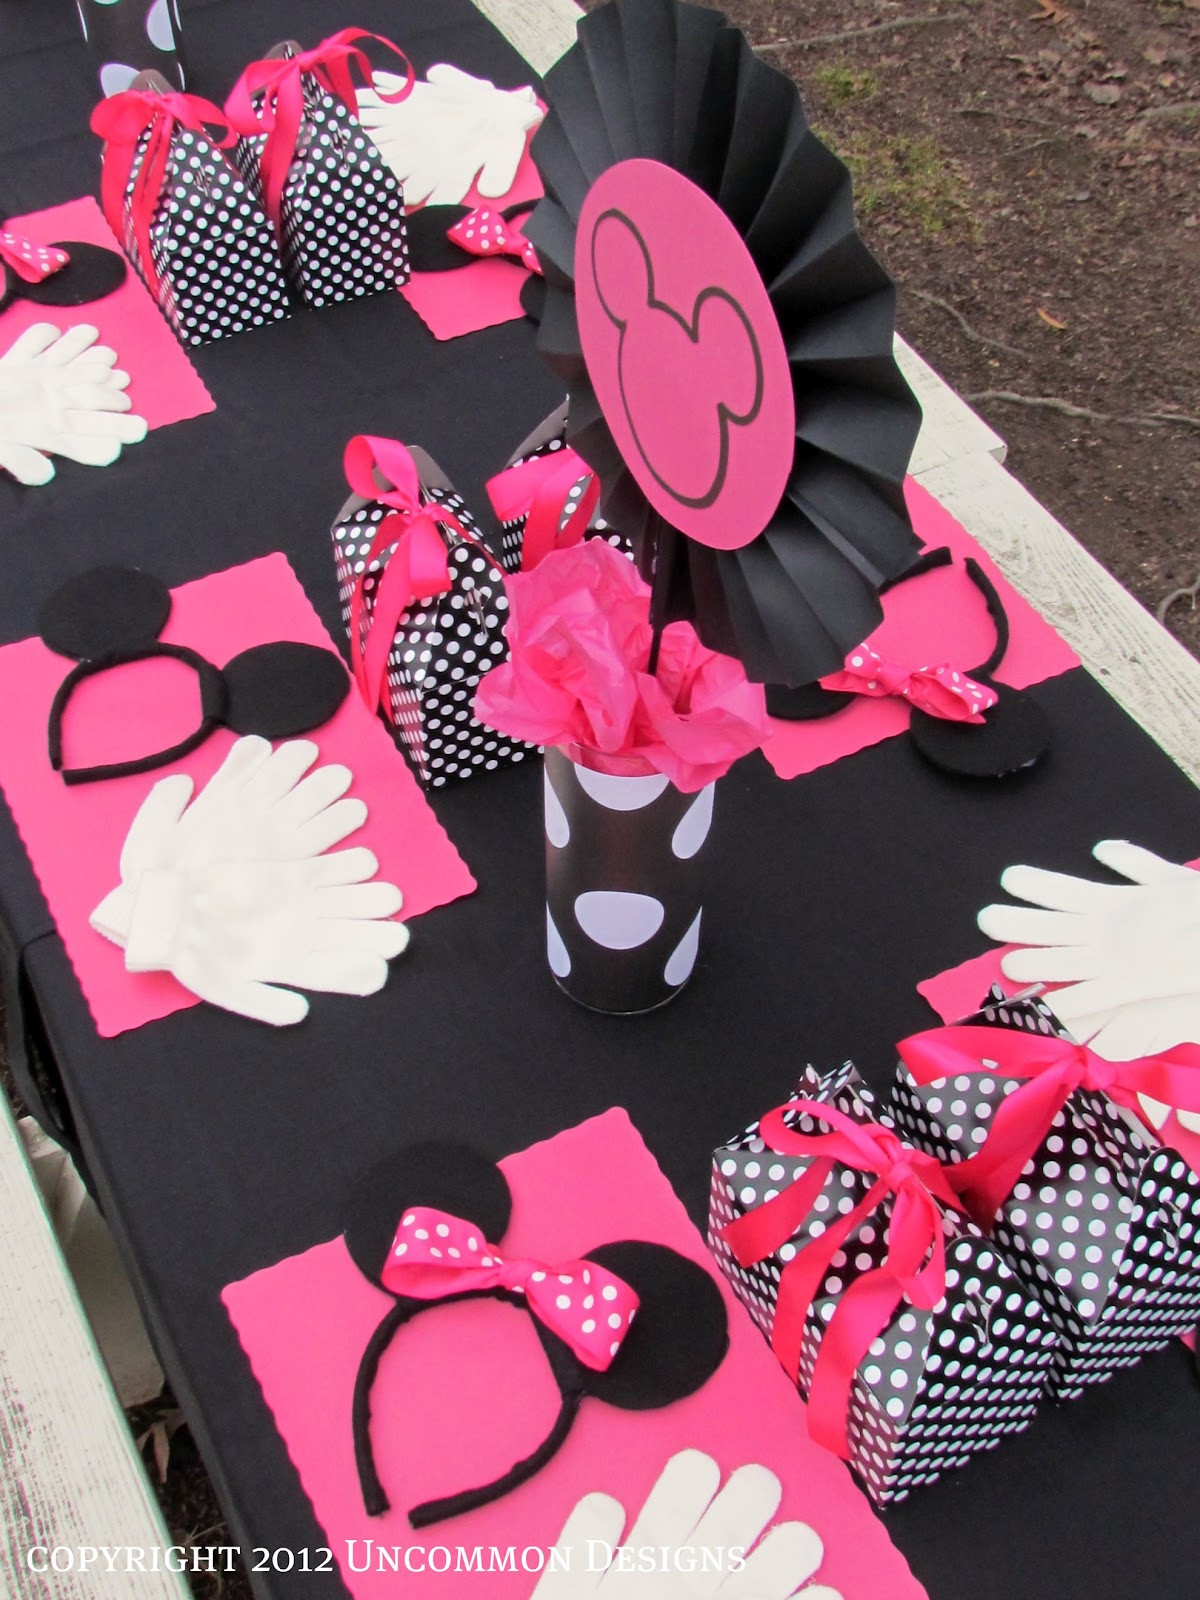 Best ideas about Minnie Mouse Birthday Decor . Save or Pin A Minnie Mouse Birthday Party Un mon Designs Now.